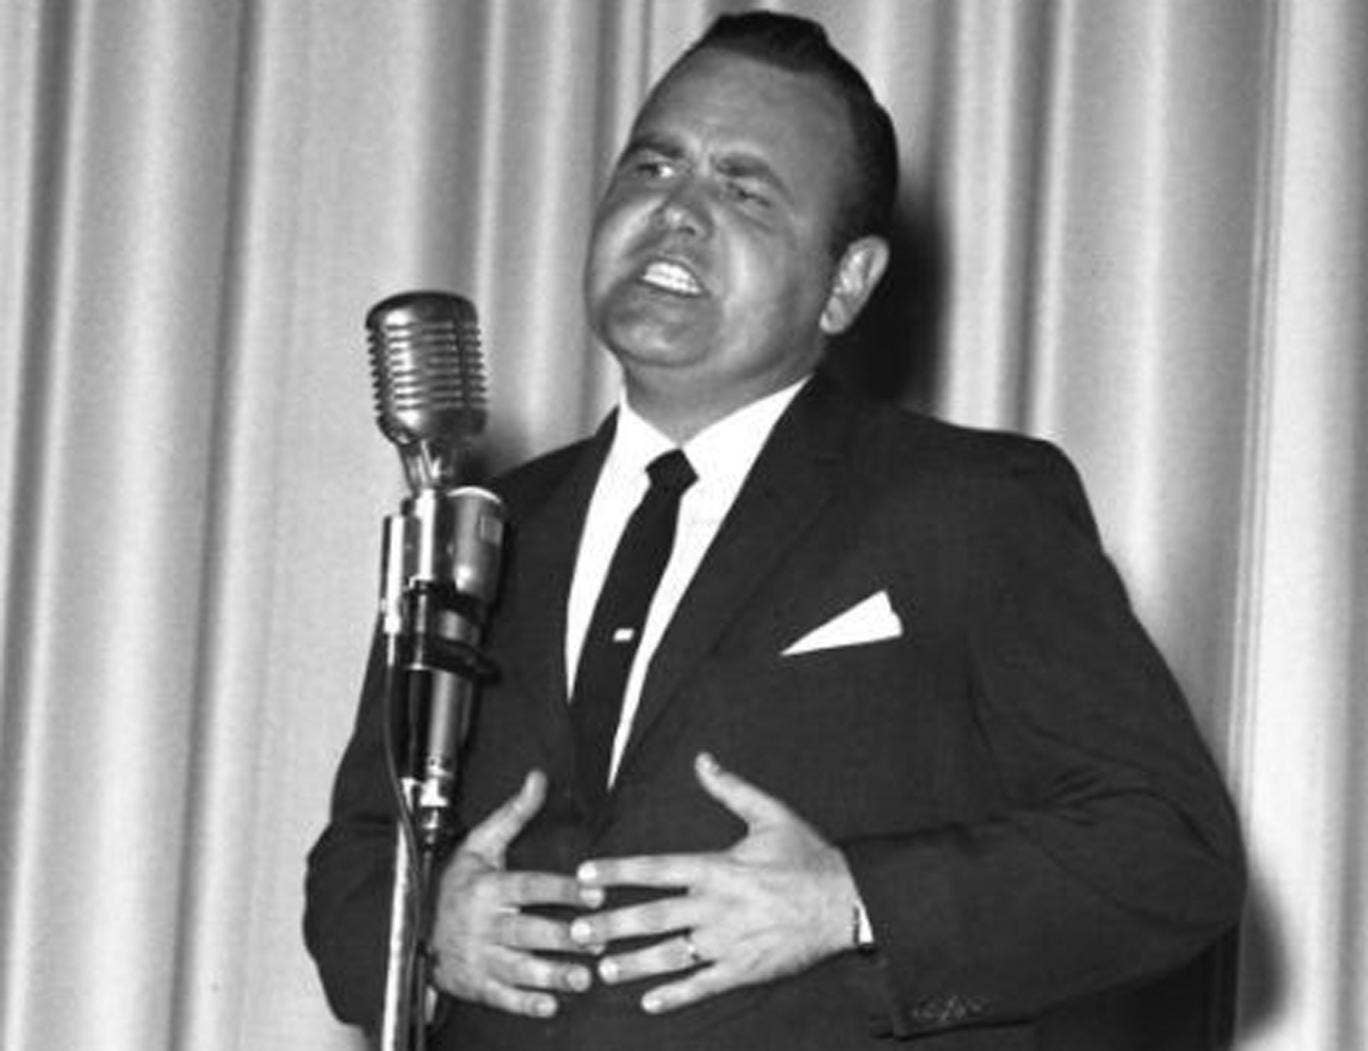 Jonathan Winters: Comedian who inspired Carrey and Williams